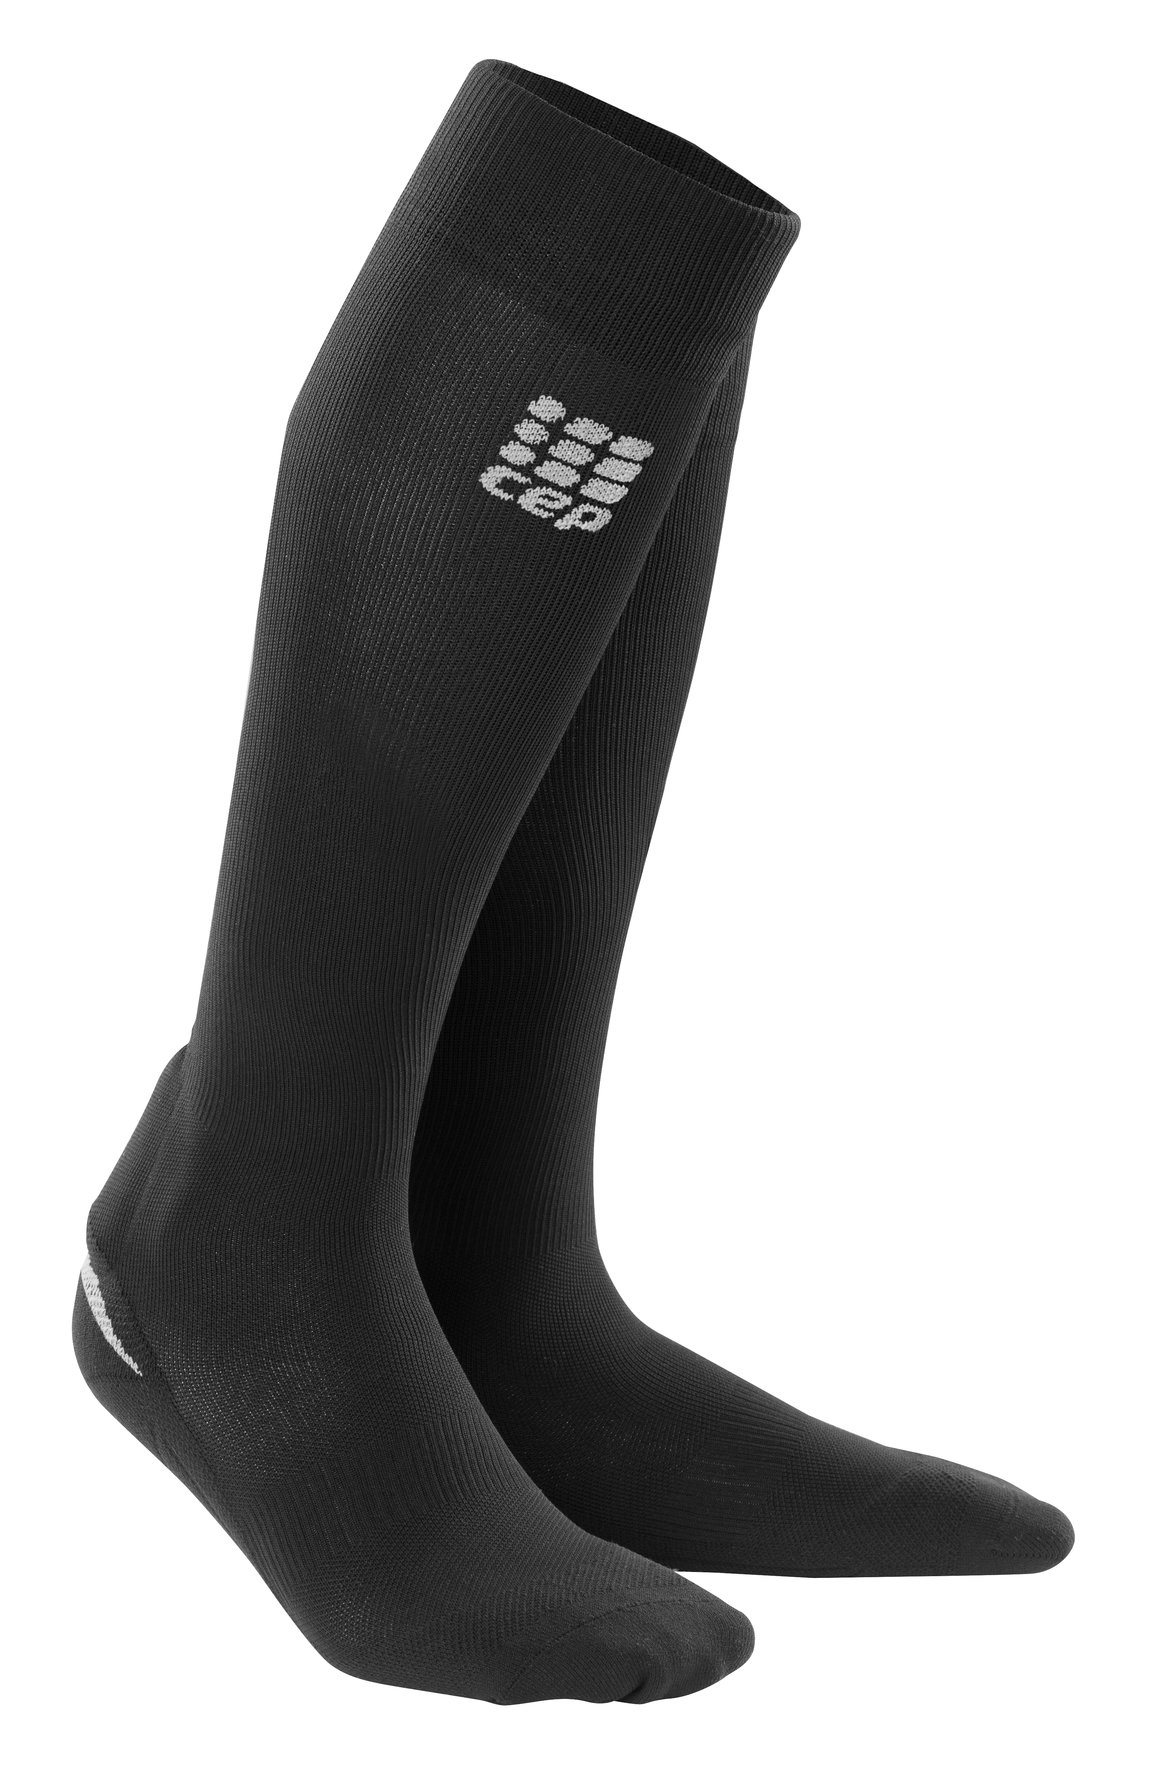 CEP Women's Compression Full Achilles Support Socks, Black, Size III